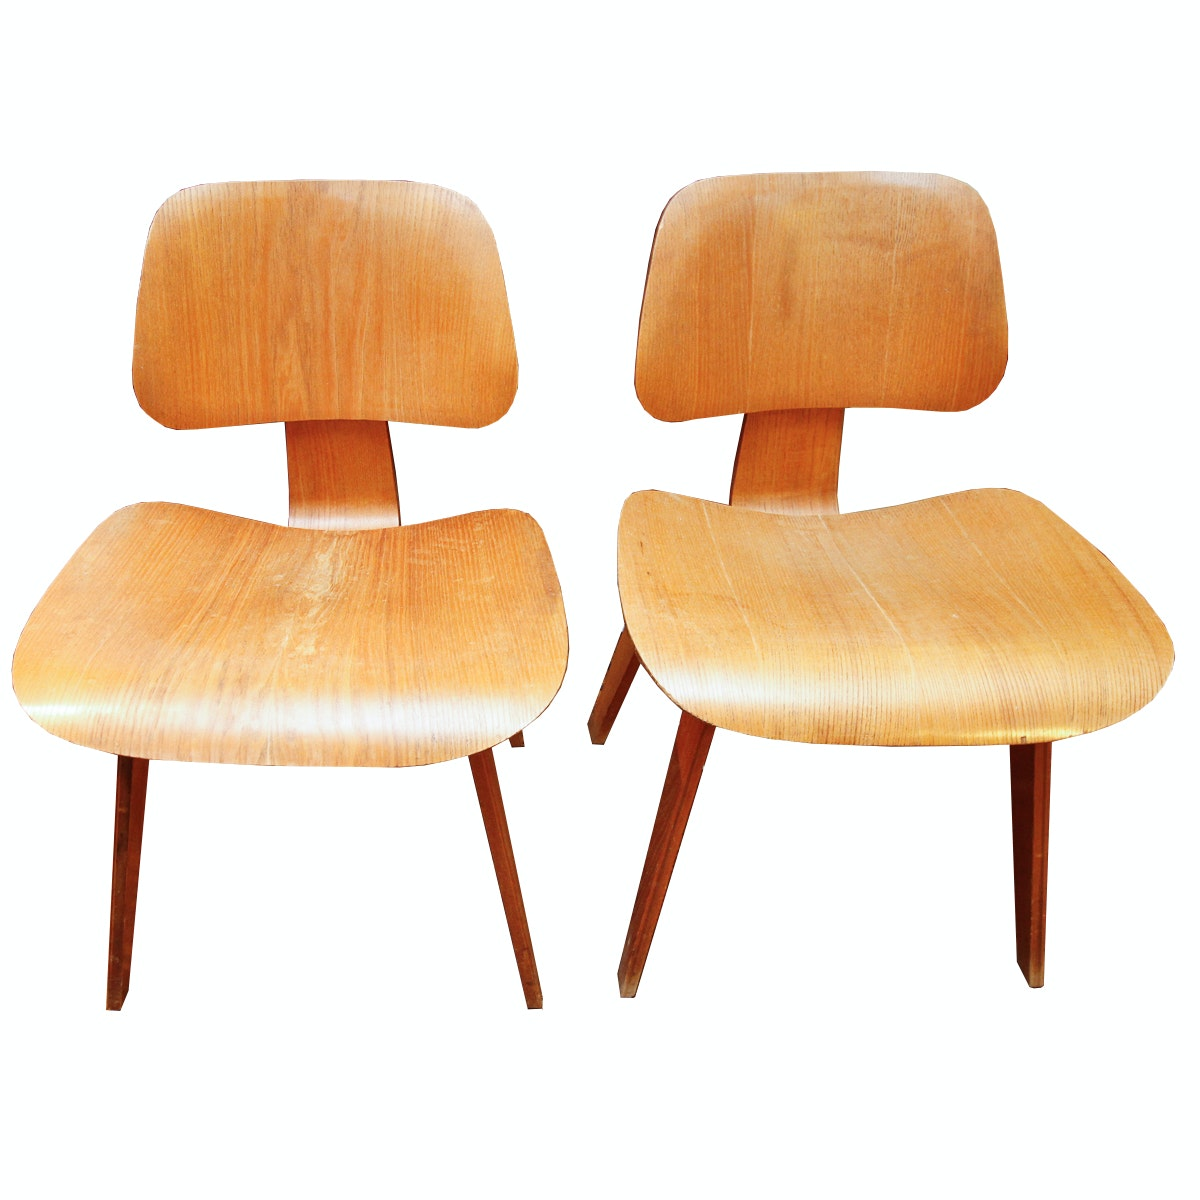 "Mid Century Modern Chairs After Eames ""DCW"""